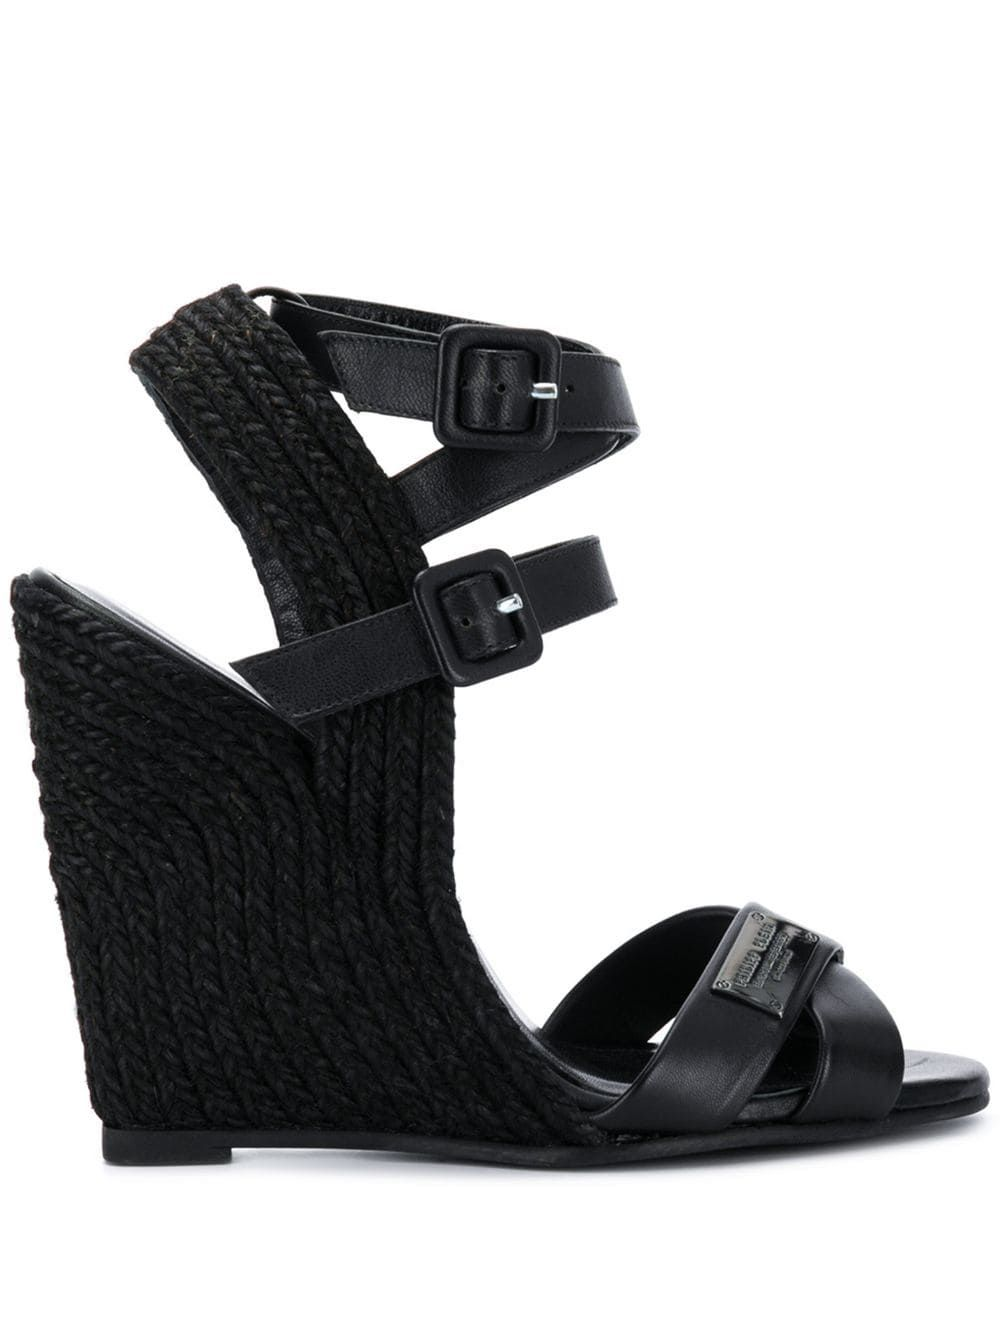 High wedge sandals | Wedge sandals, Leather wedge sandals